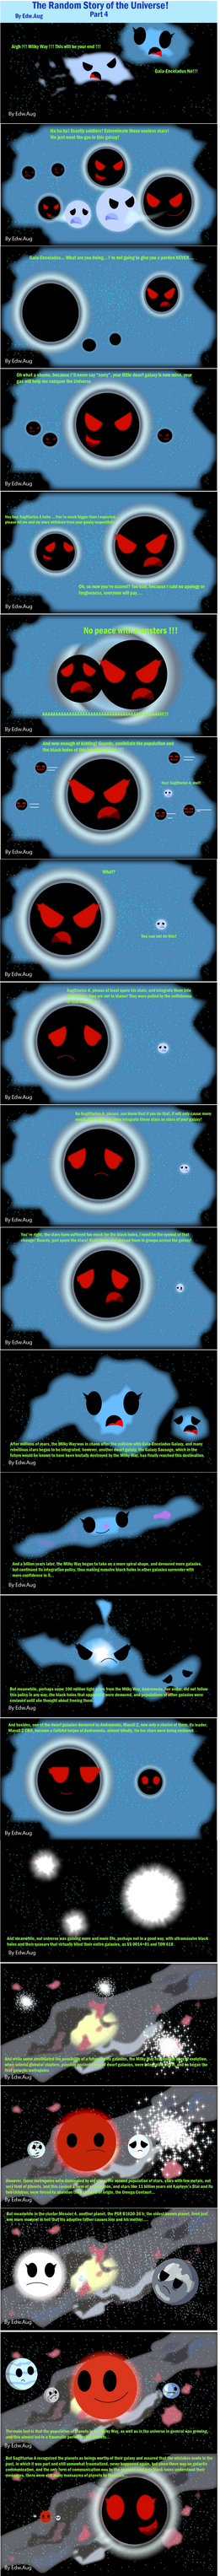 The Random History of the Universe! Part 4